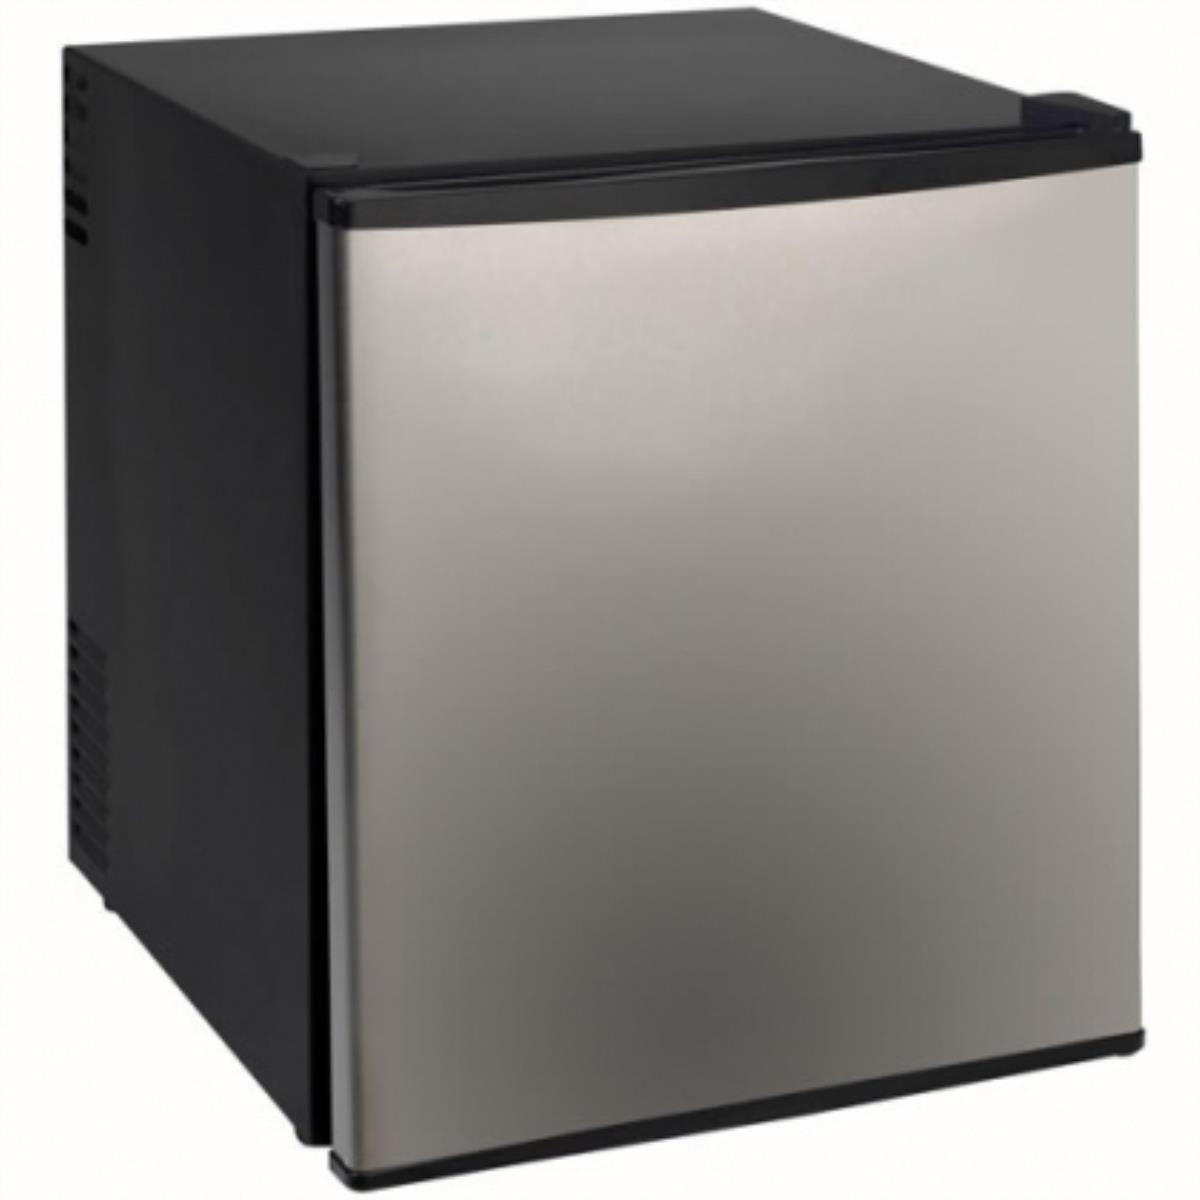 AVANTI SHP1702SS STAINLESS COMPACT REFRIGERATOR 1.7 CU FT